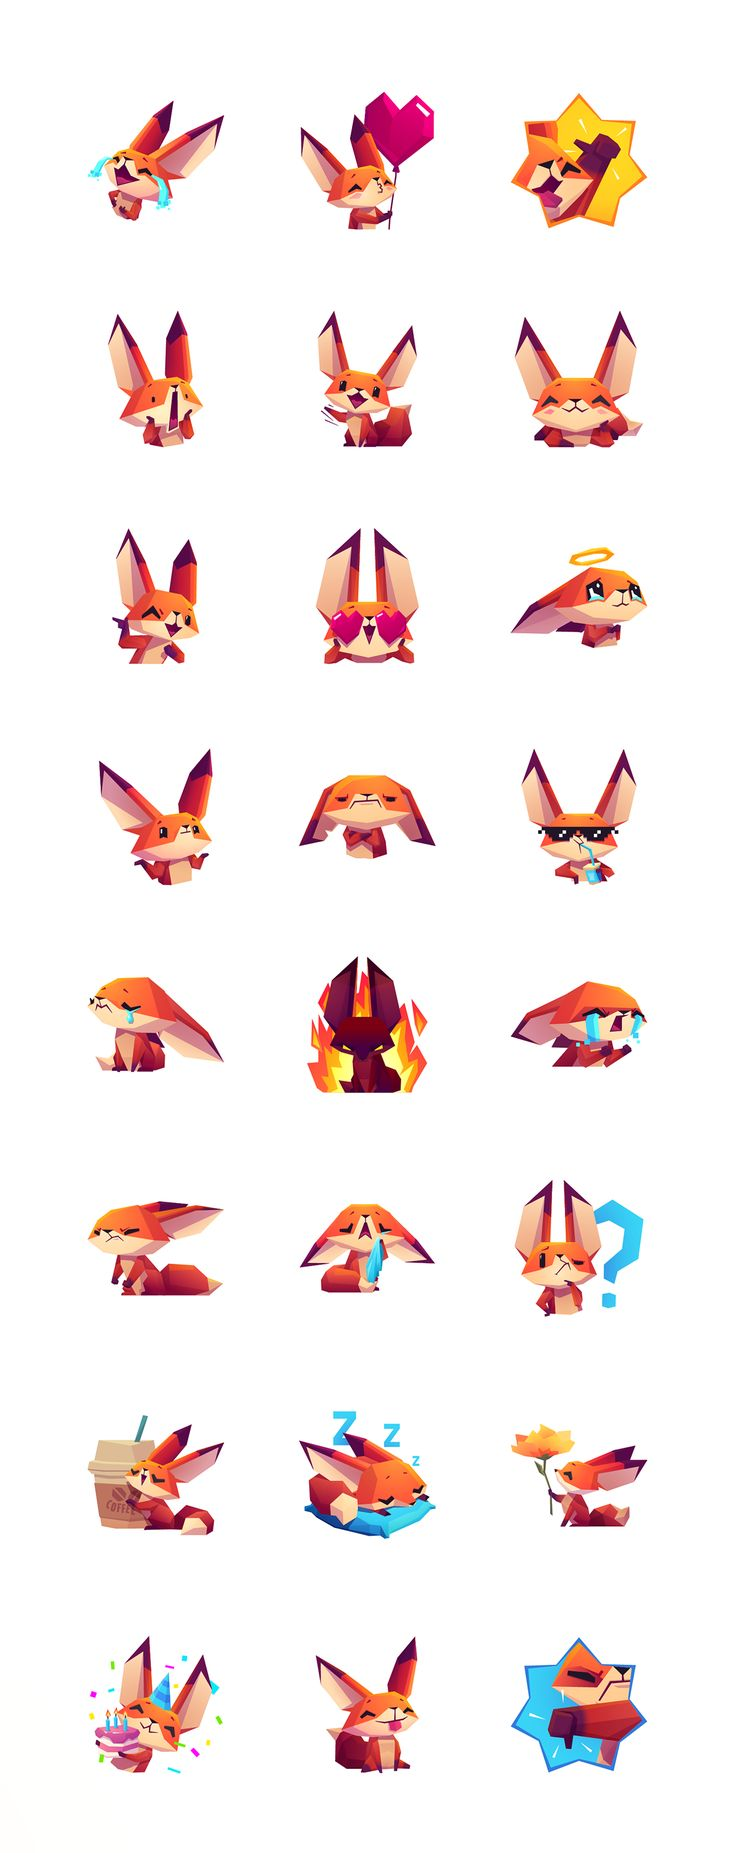 Introducing to you Sticker Pack with cute hero of our last game The Little Fox, a charismatic fox in low poly style. Specially made for iMessage on App Store.